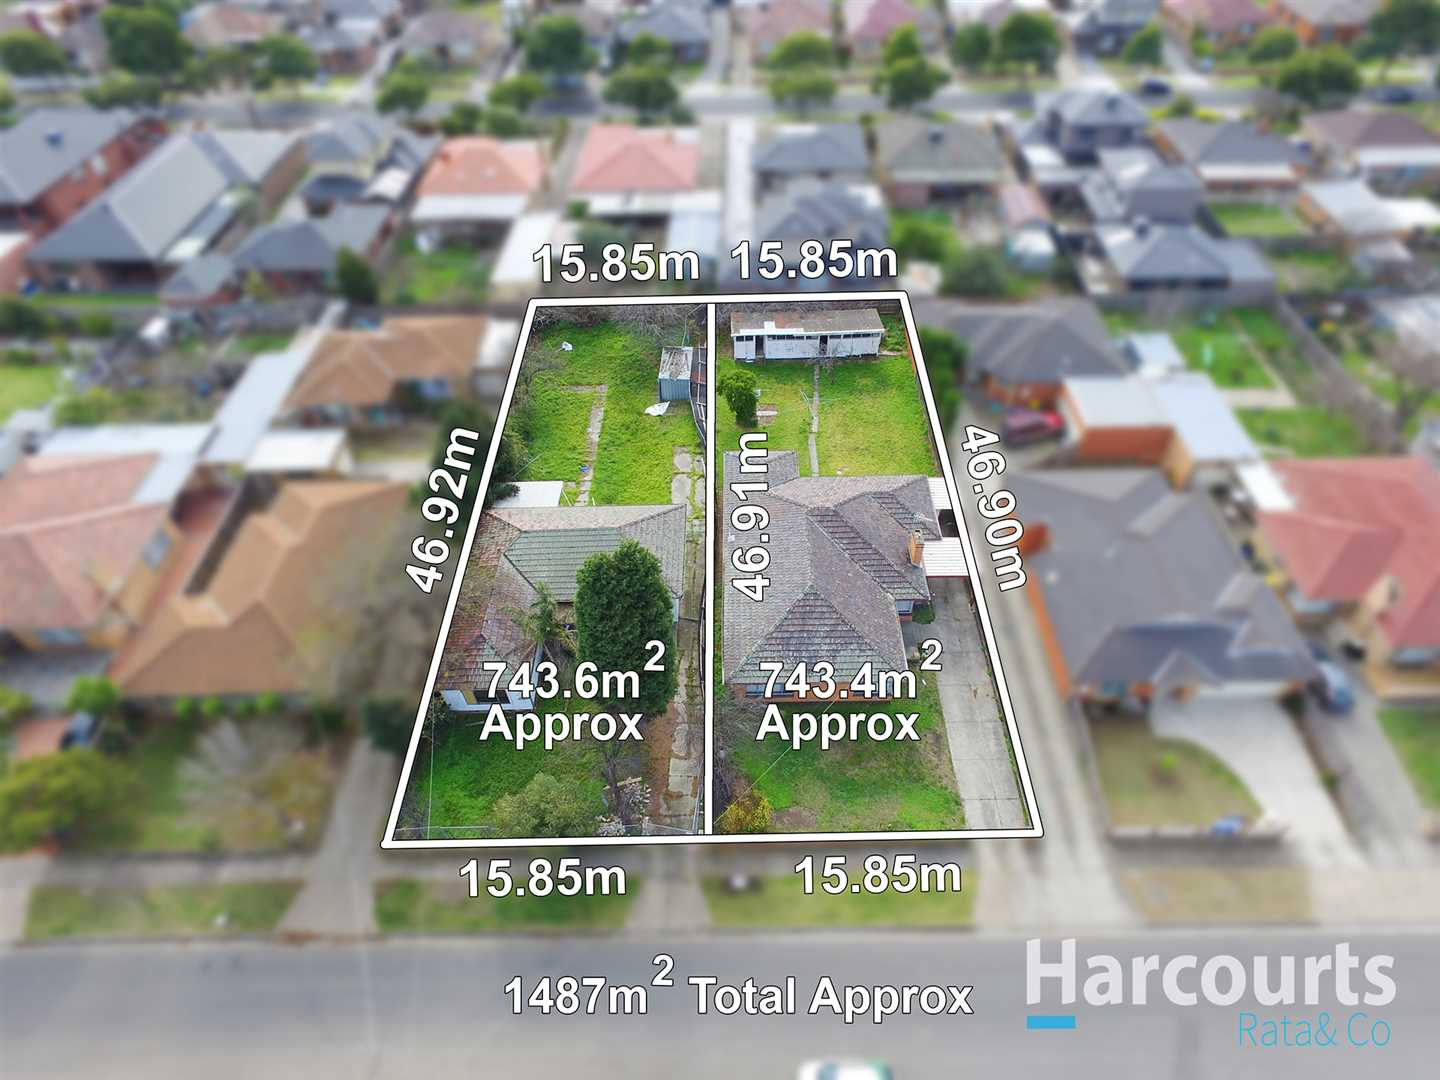 Development Opportunity on 1487m2 Approx